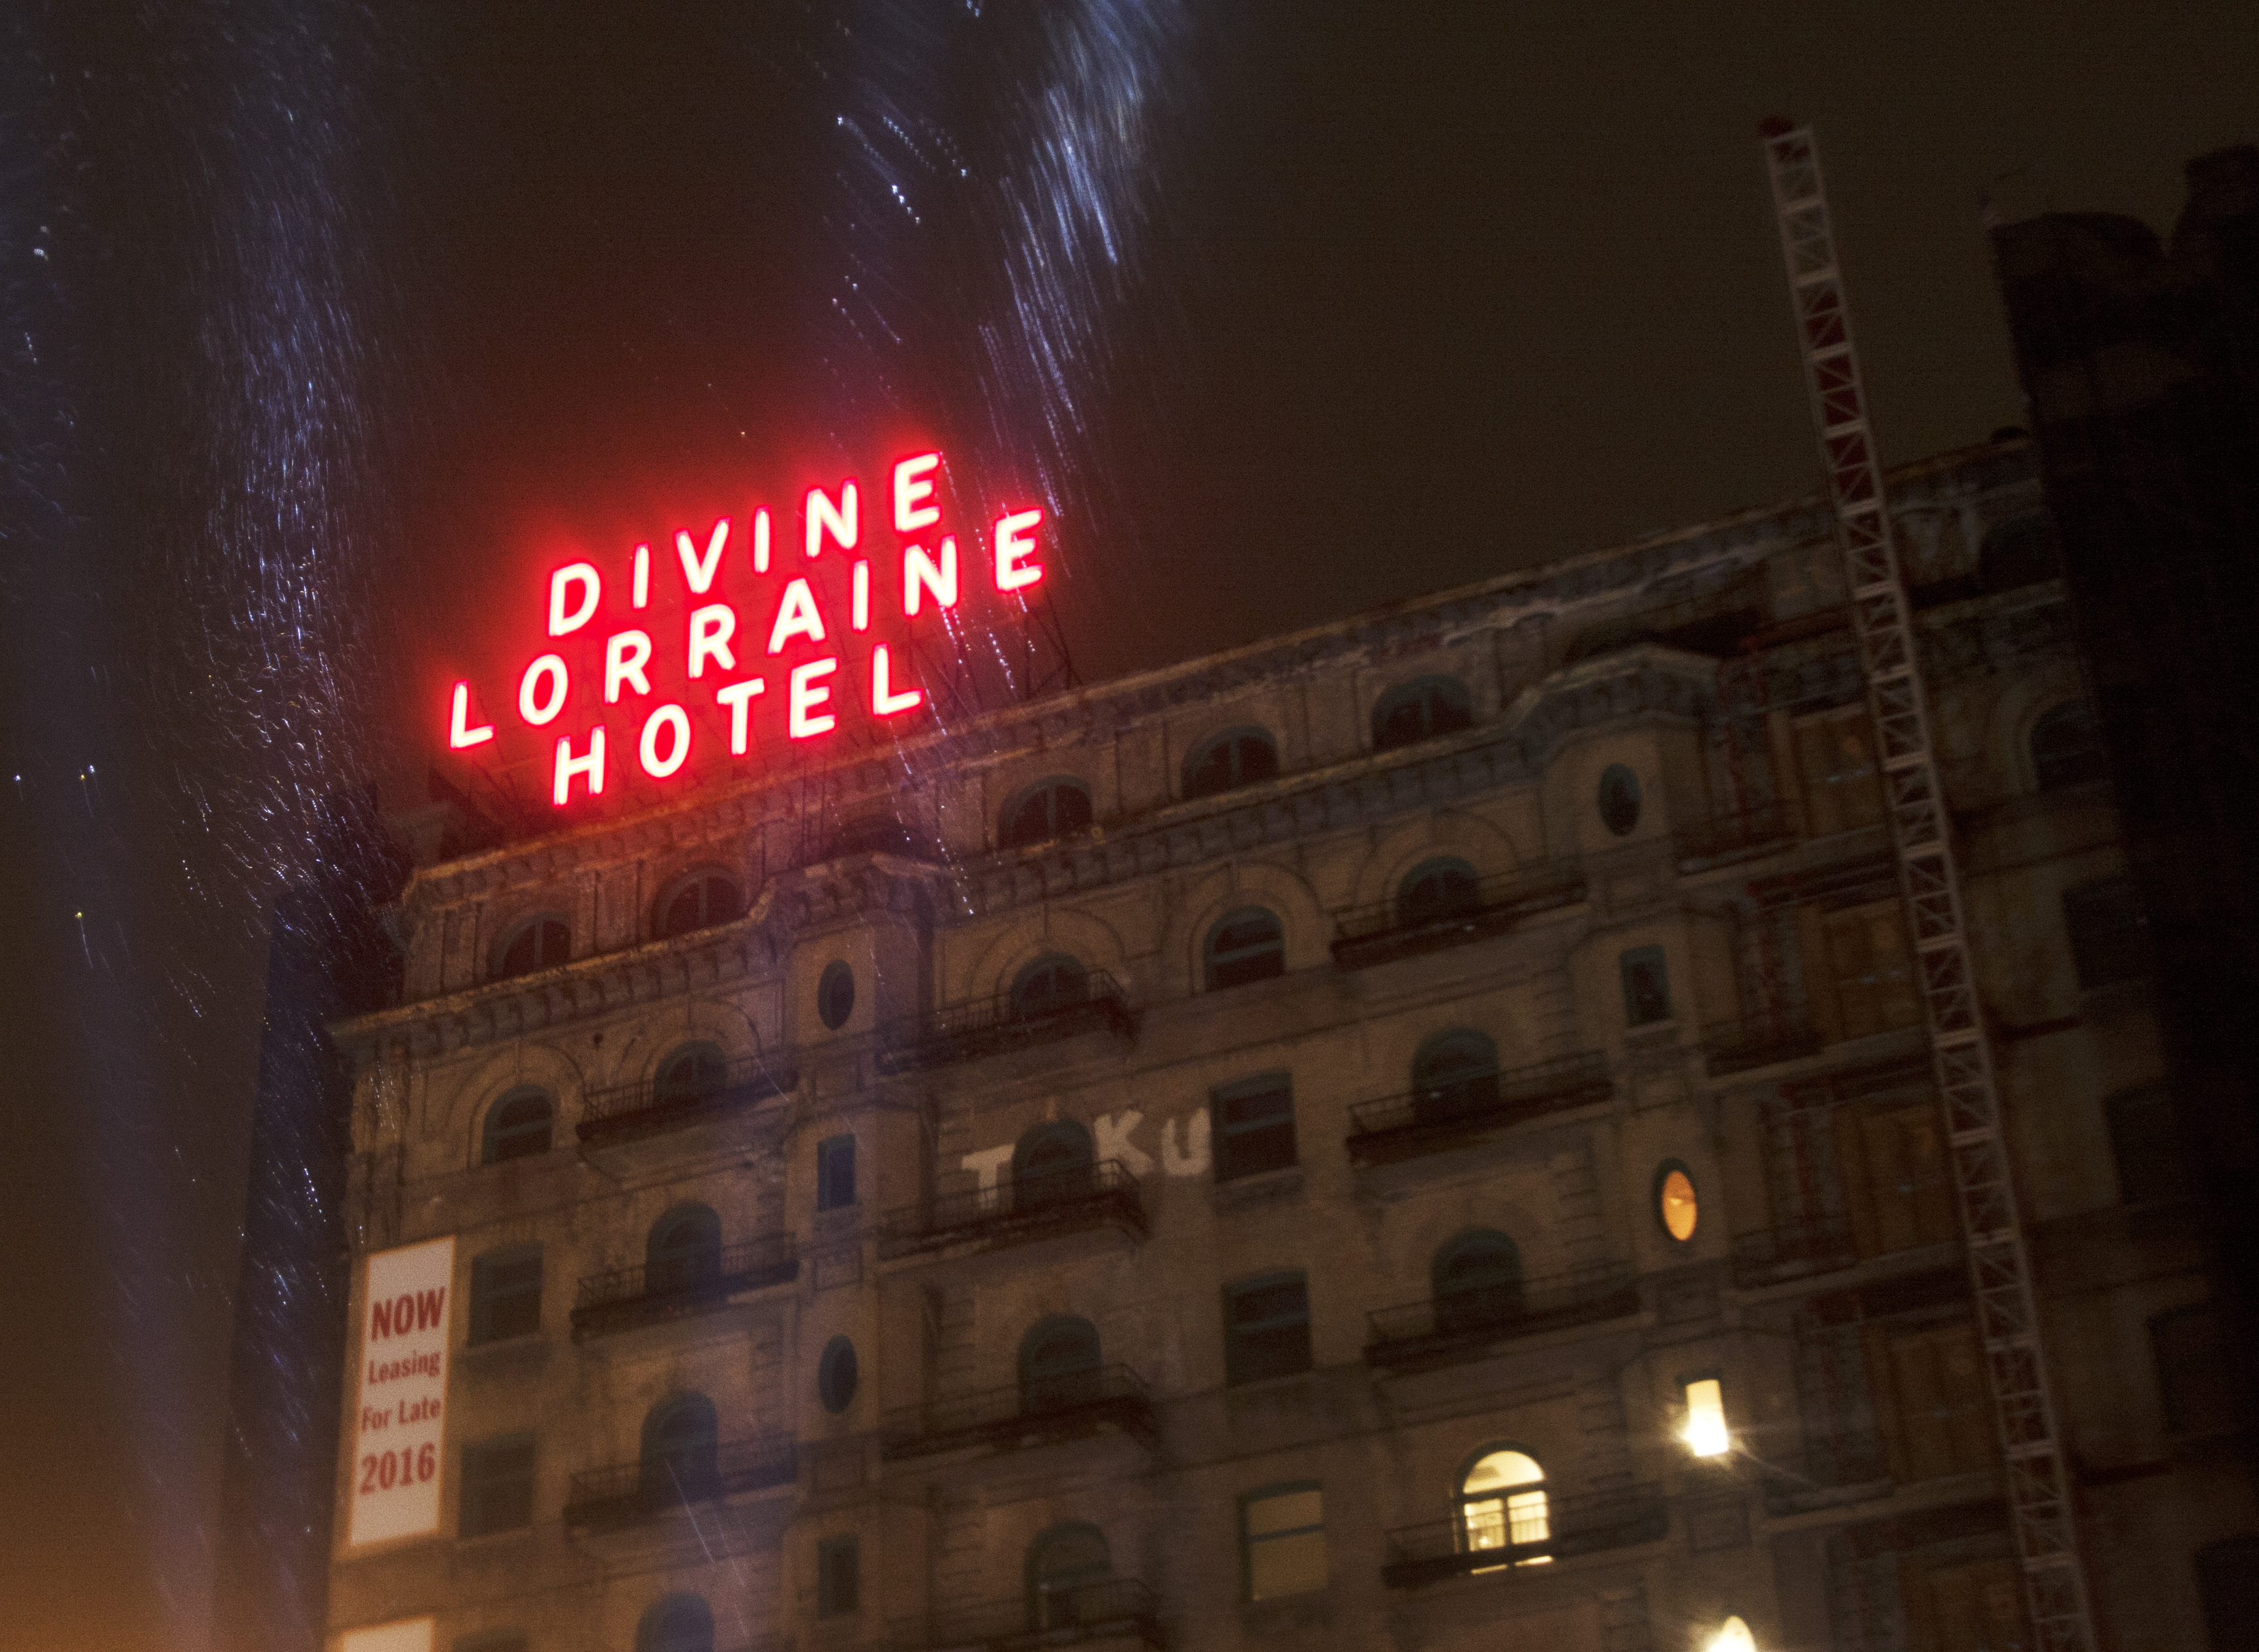 The Divine Lorraine Hotel with its iconic neon-red sign lit up.